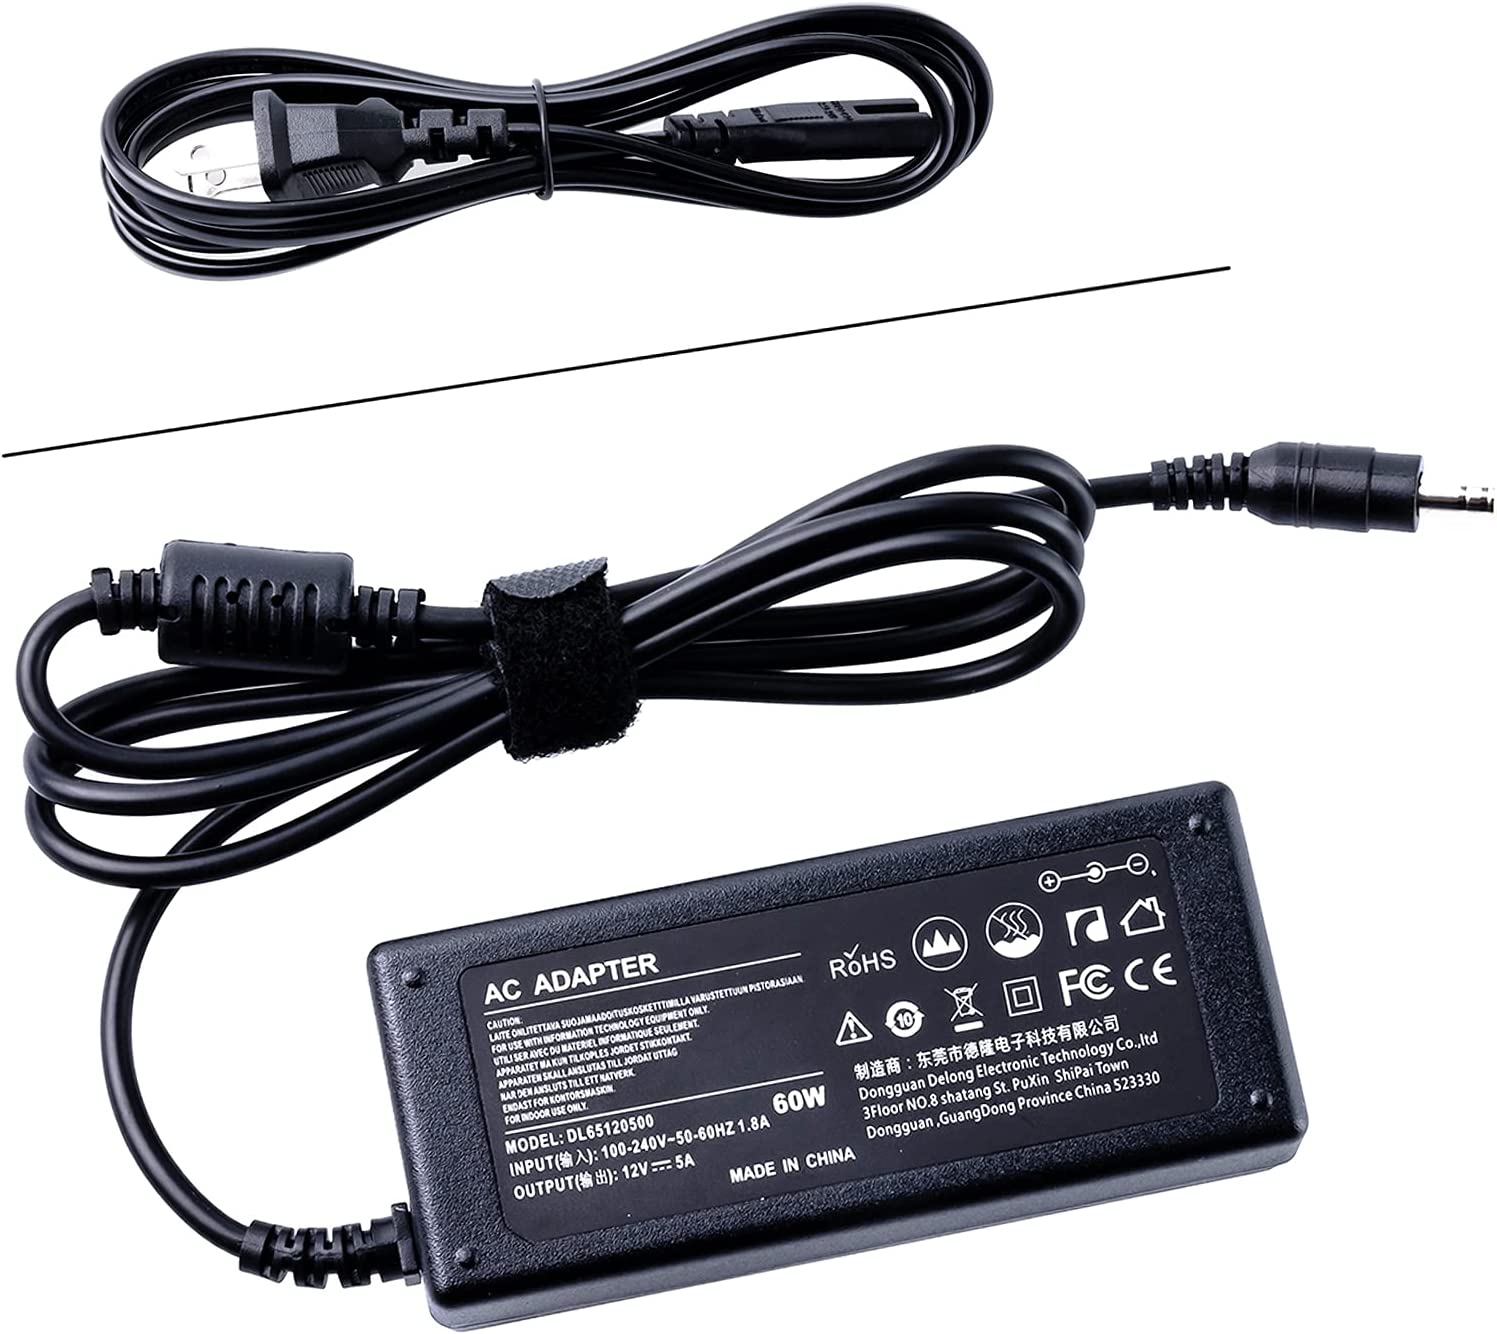 12V AC Adapter Charger for Dell 22'' 23'' 24'' Screen, S2316H S2316M S2318HN S2340L S2340M S2440L S2740L S2240L S2240T S2240M S2216H S2216M S2340Mc LED LCD Monitor Screen Adaptor Power Supply Cord